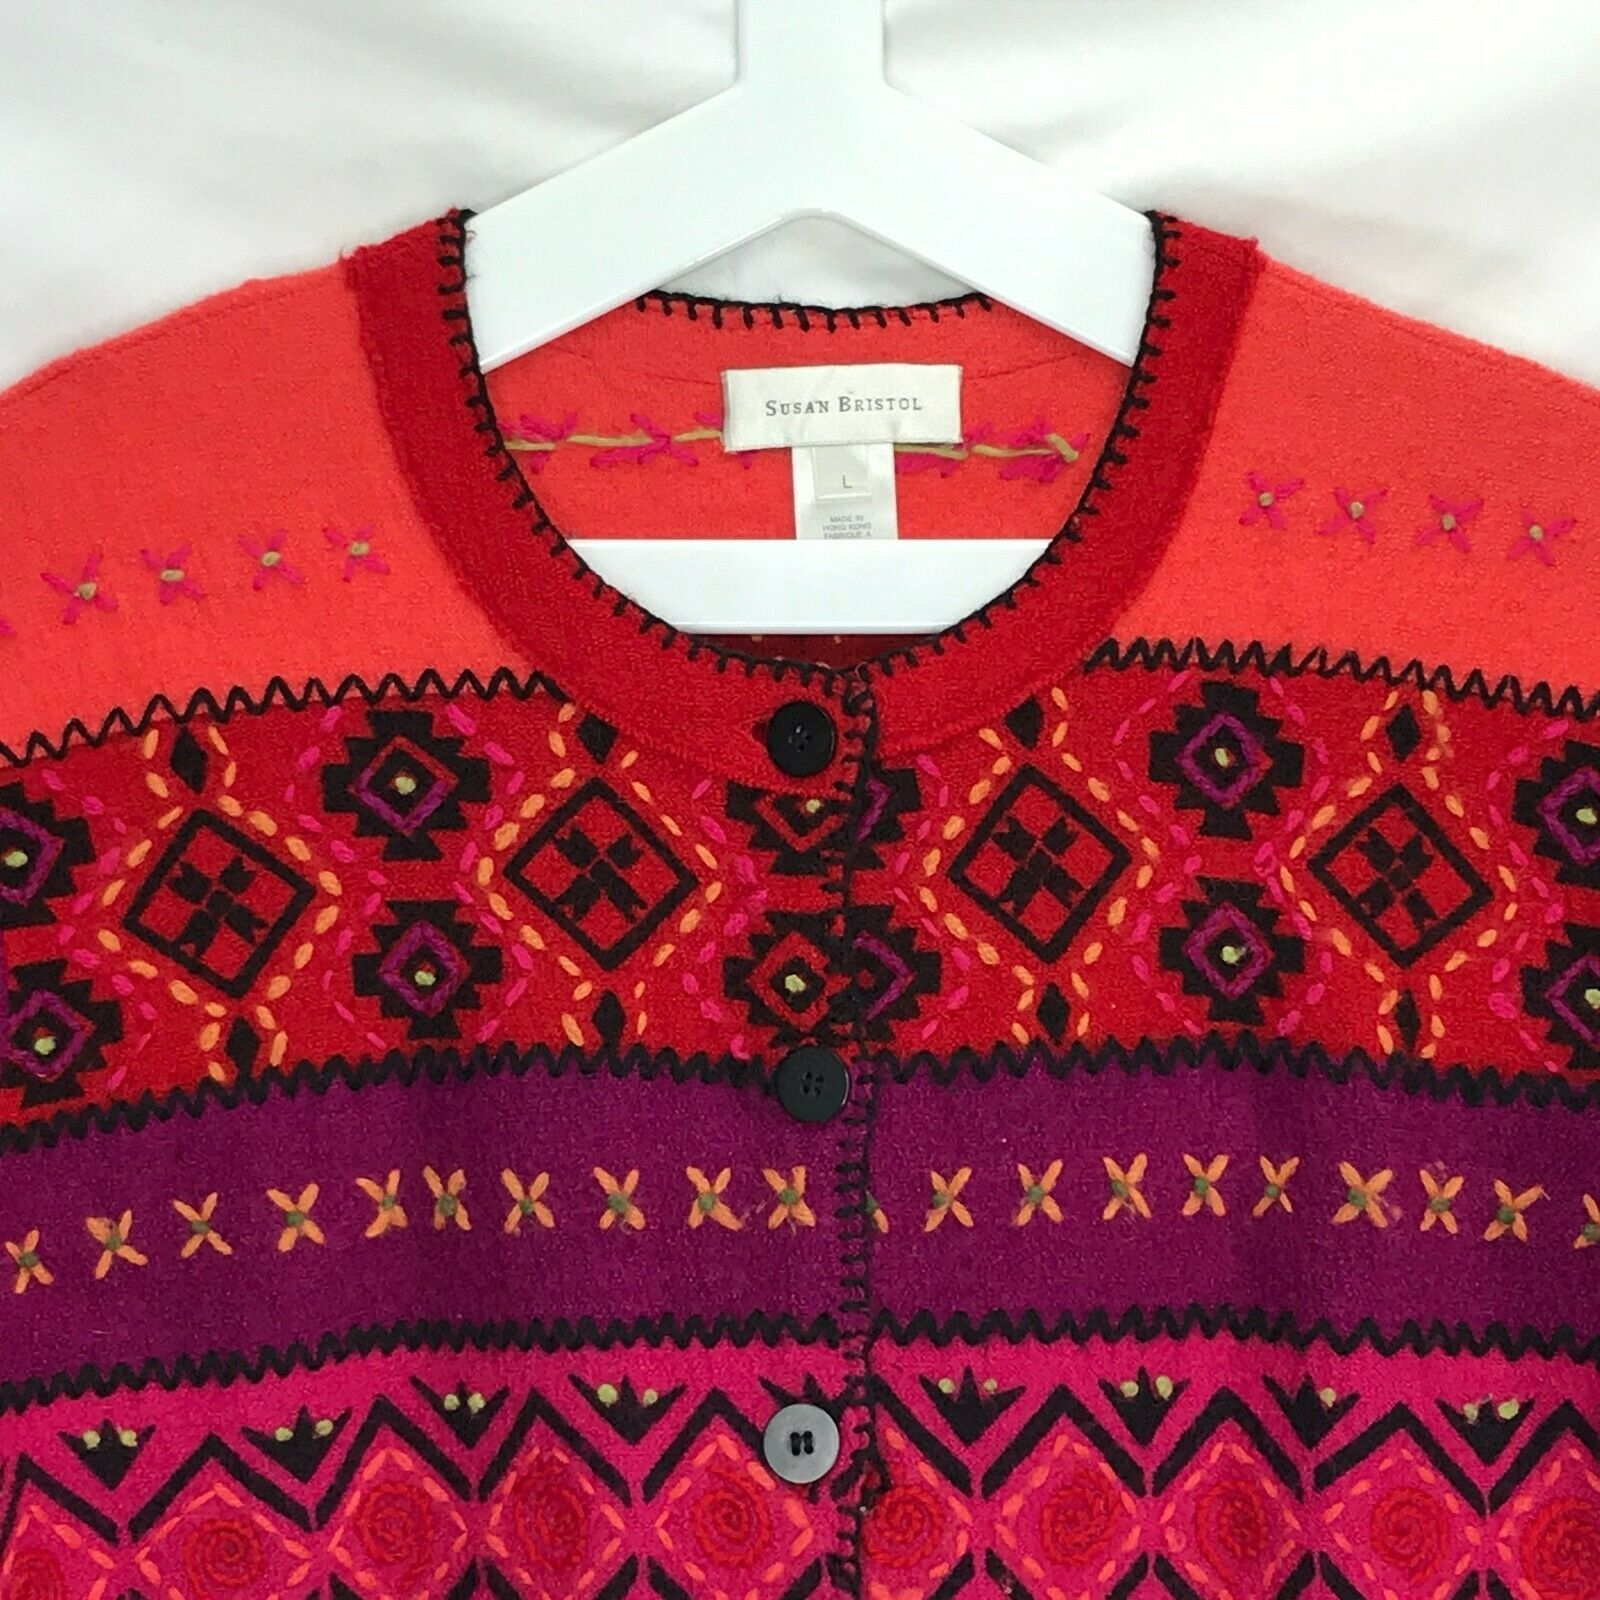 Susan Bristol Wool Cardigan Sweater Size Large L Button Front Hand Embroidered image 2